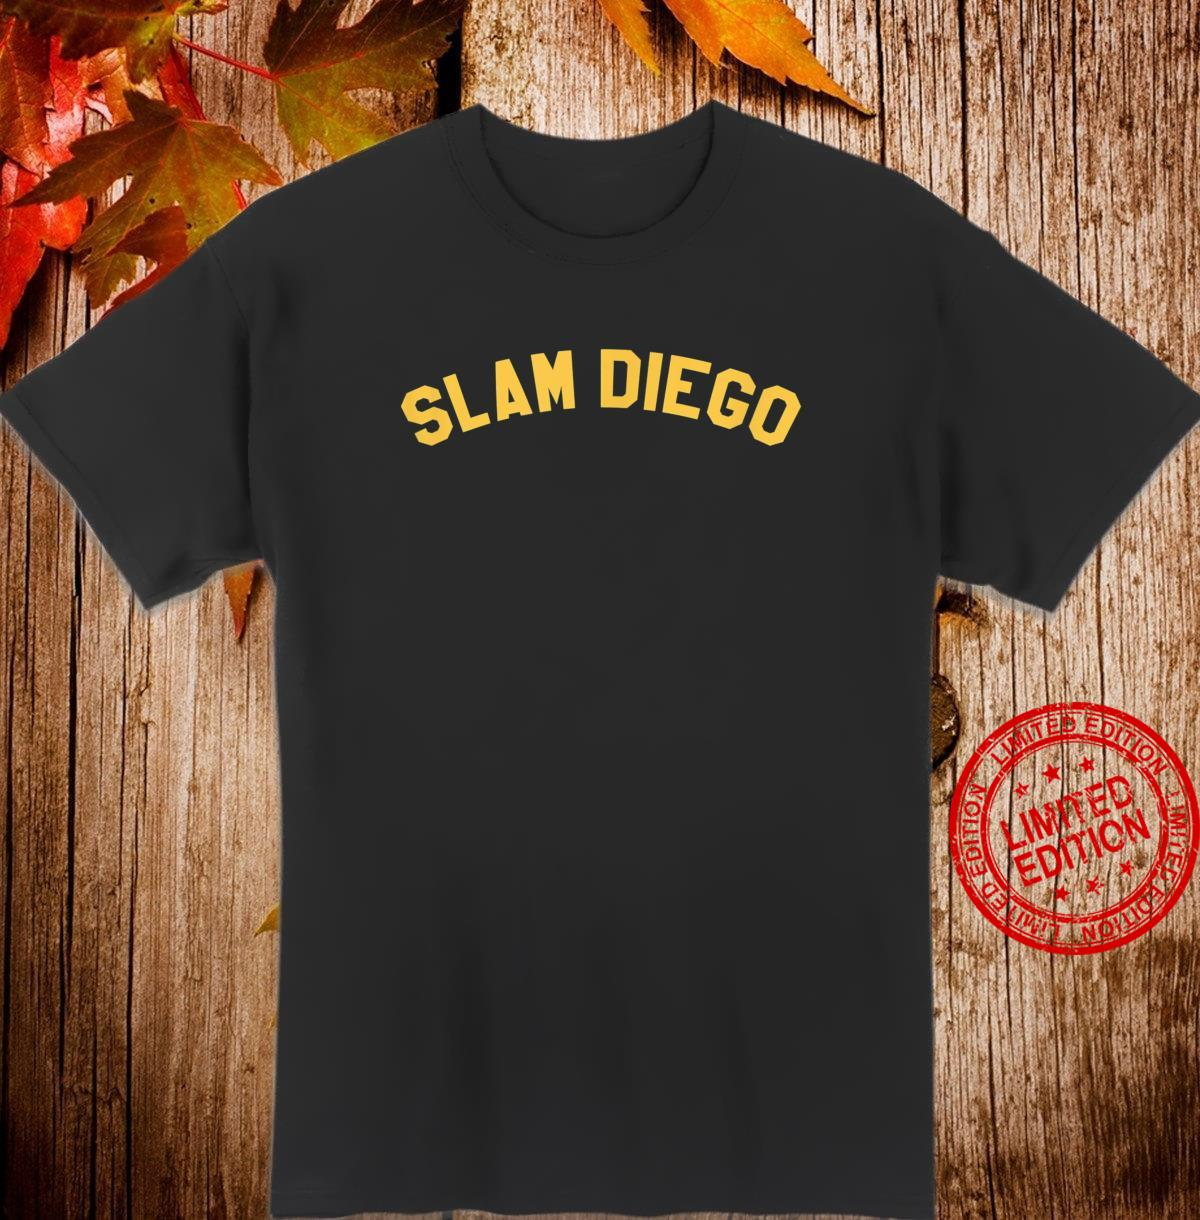 OFFICIAL SLAM DIEGO Curved T EXCLUSIVE LIMITED EDITION Shirt